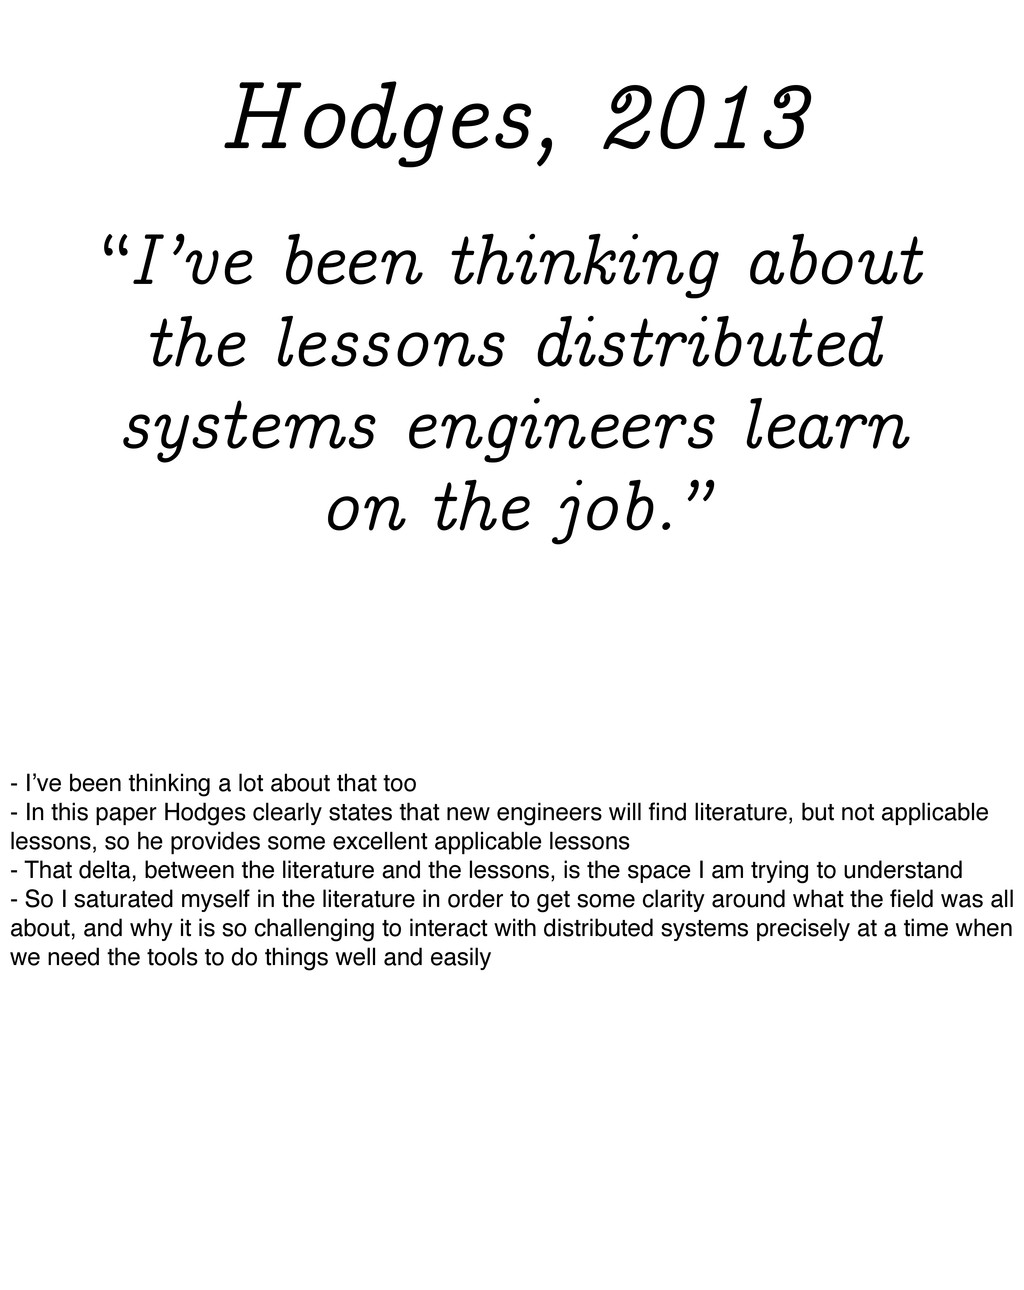 """""""I've been thinking about the lessons distribut..."""